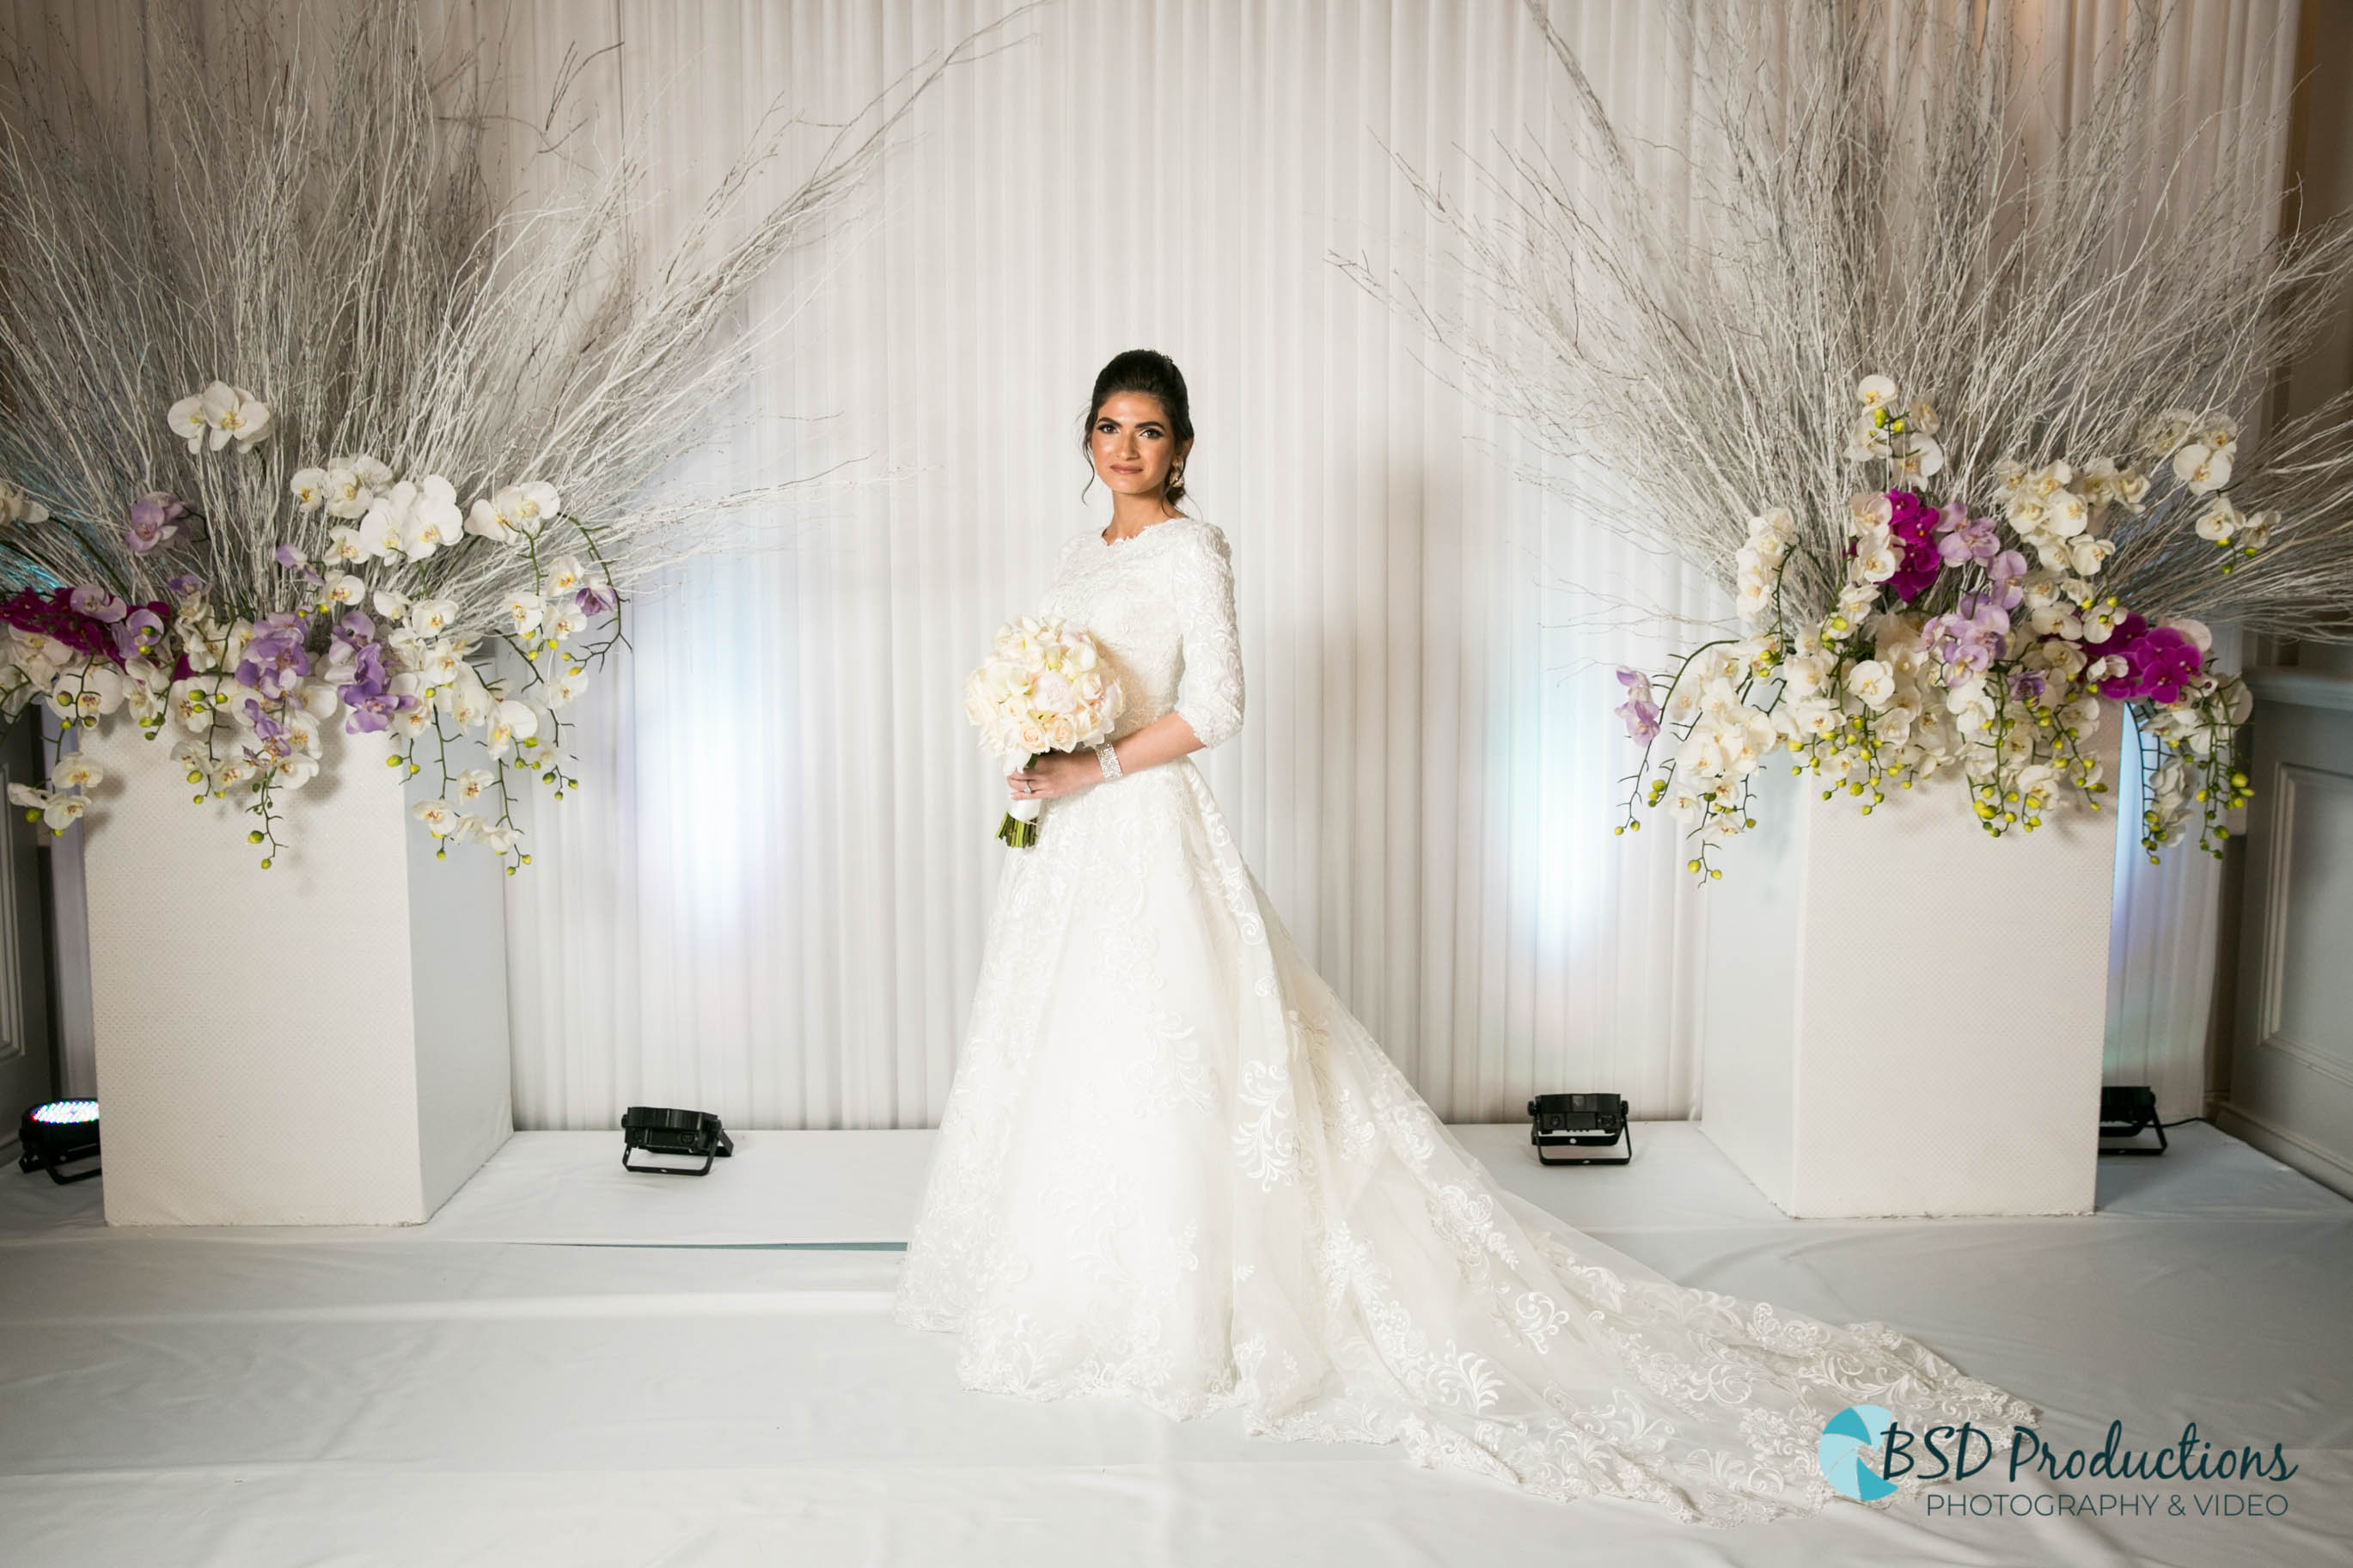 UH5A5274 Wedding – BSD Productions Photography